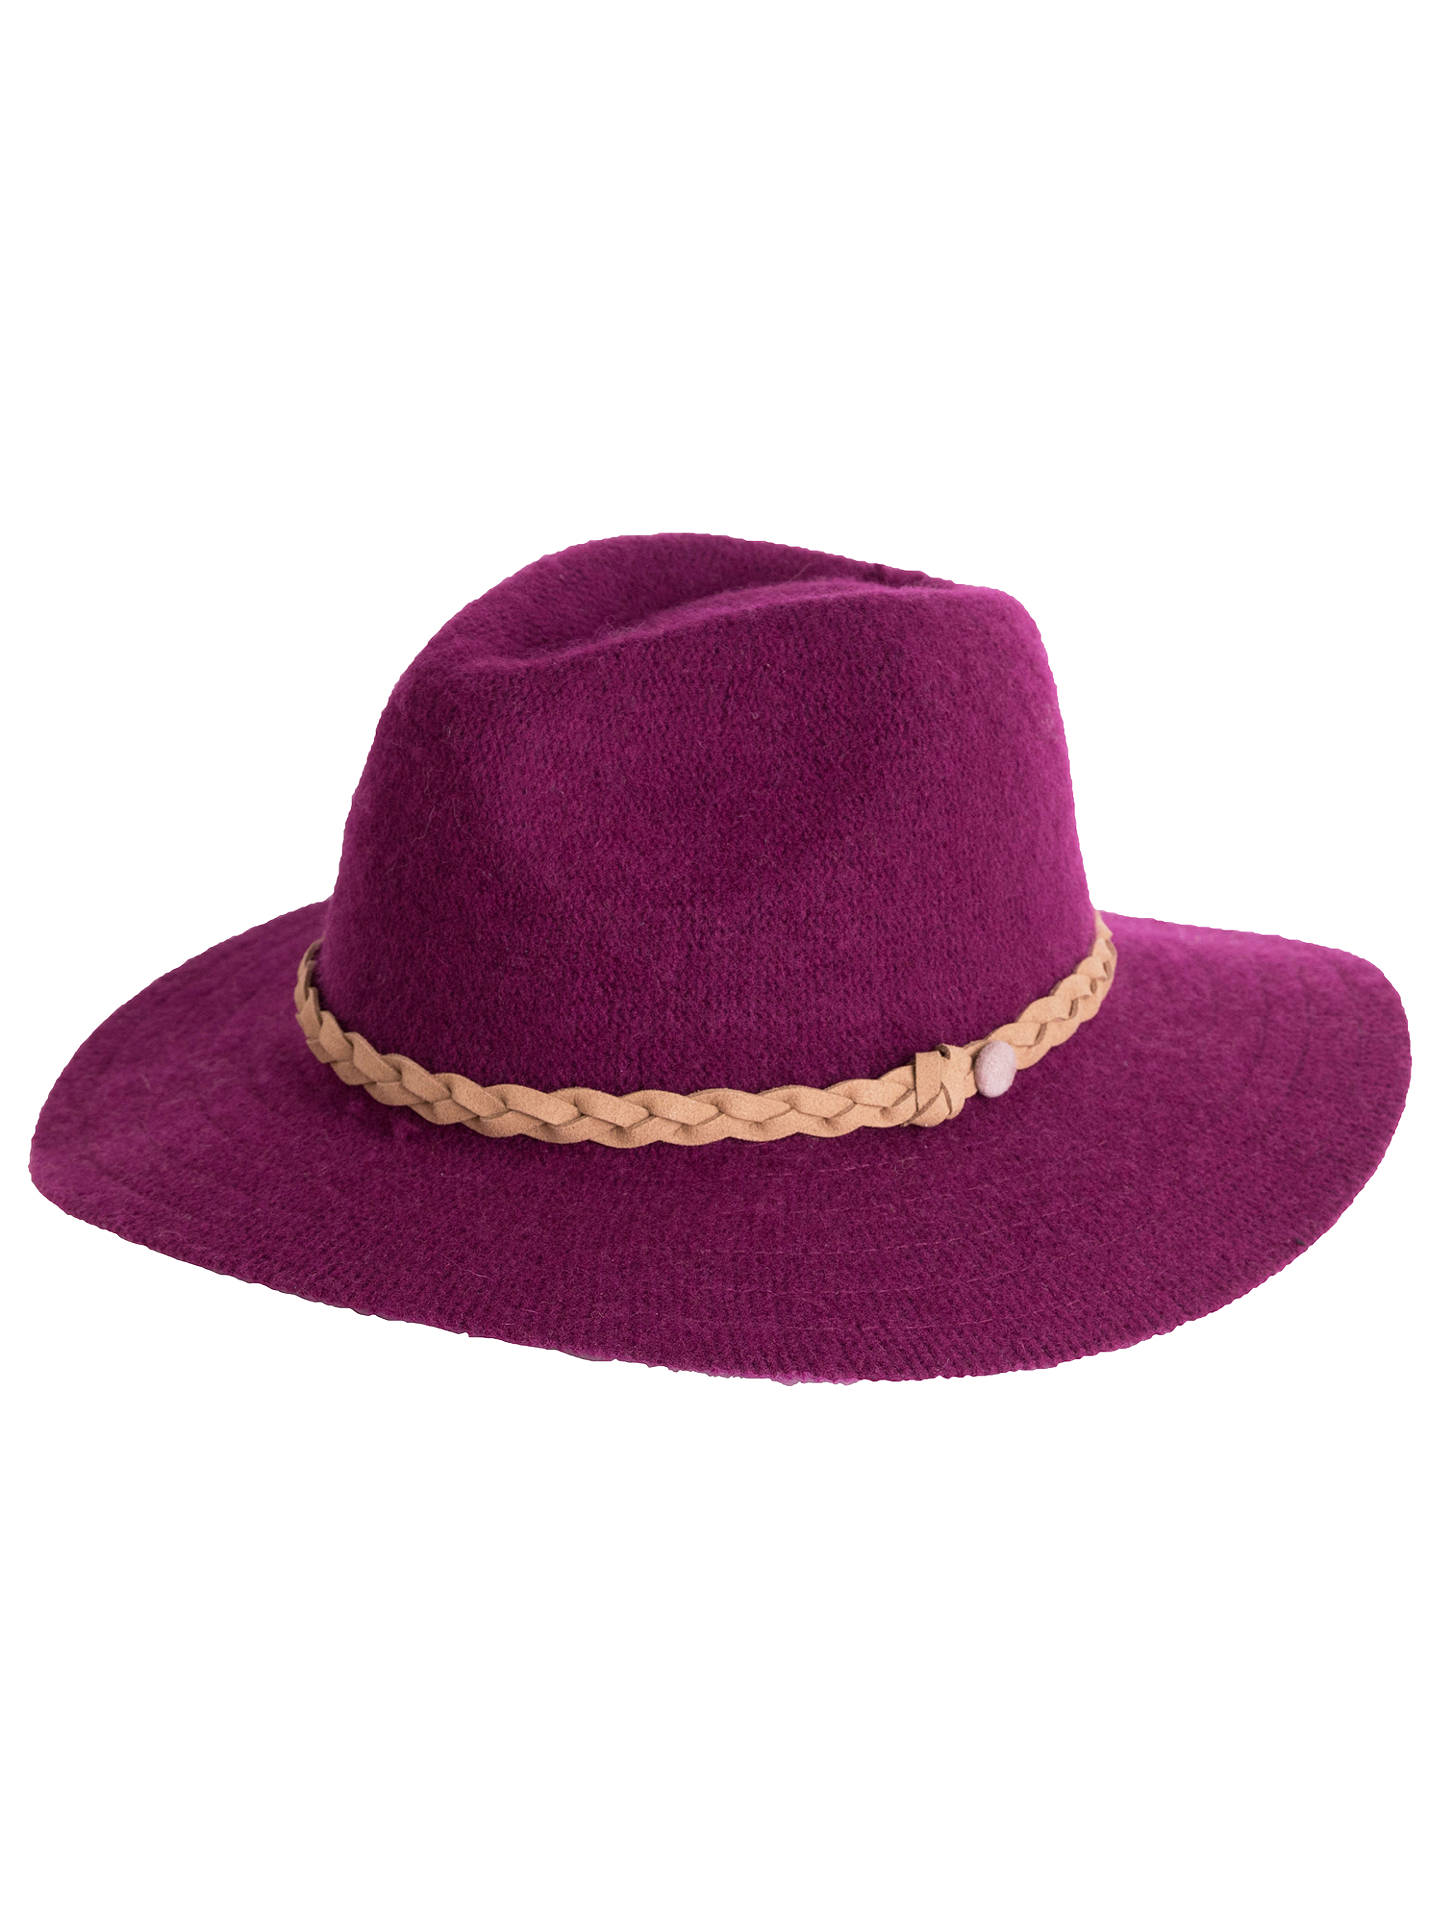 BuyPowder Katie Wool Blend Trilby Hat, Magenta Online at johnlewis.com